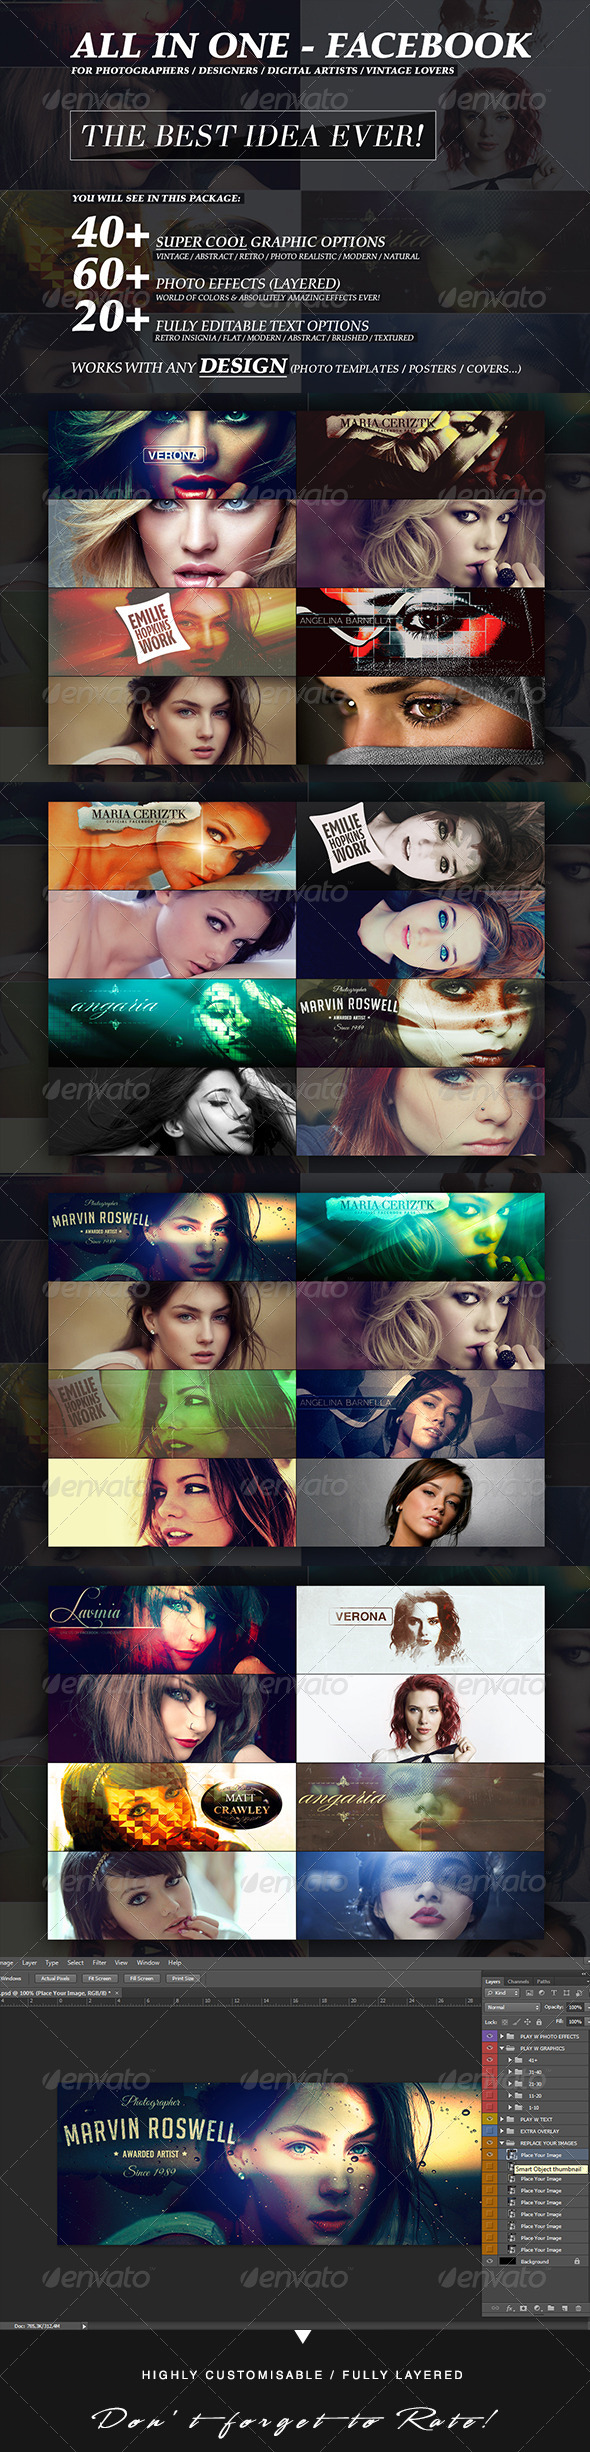 GraphicRiver All In One ExtraOrdinary Facebook Revolution 6193839